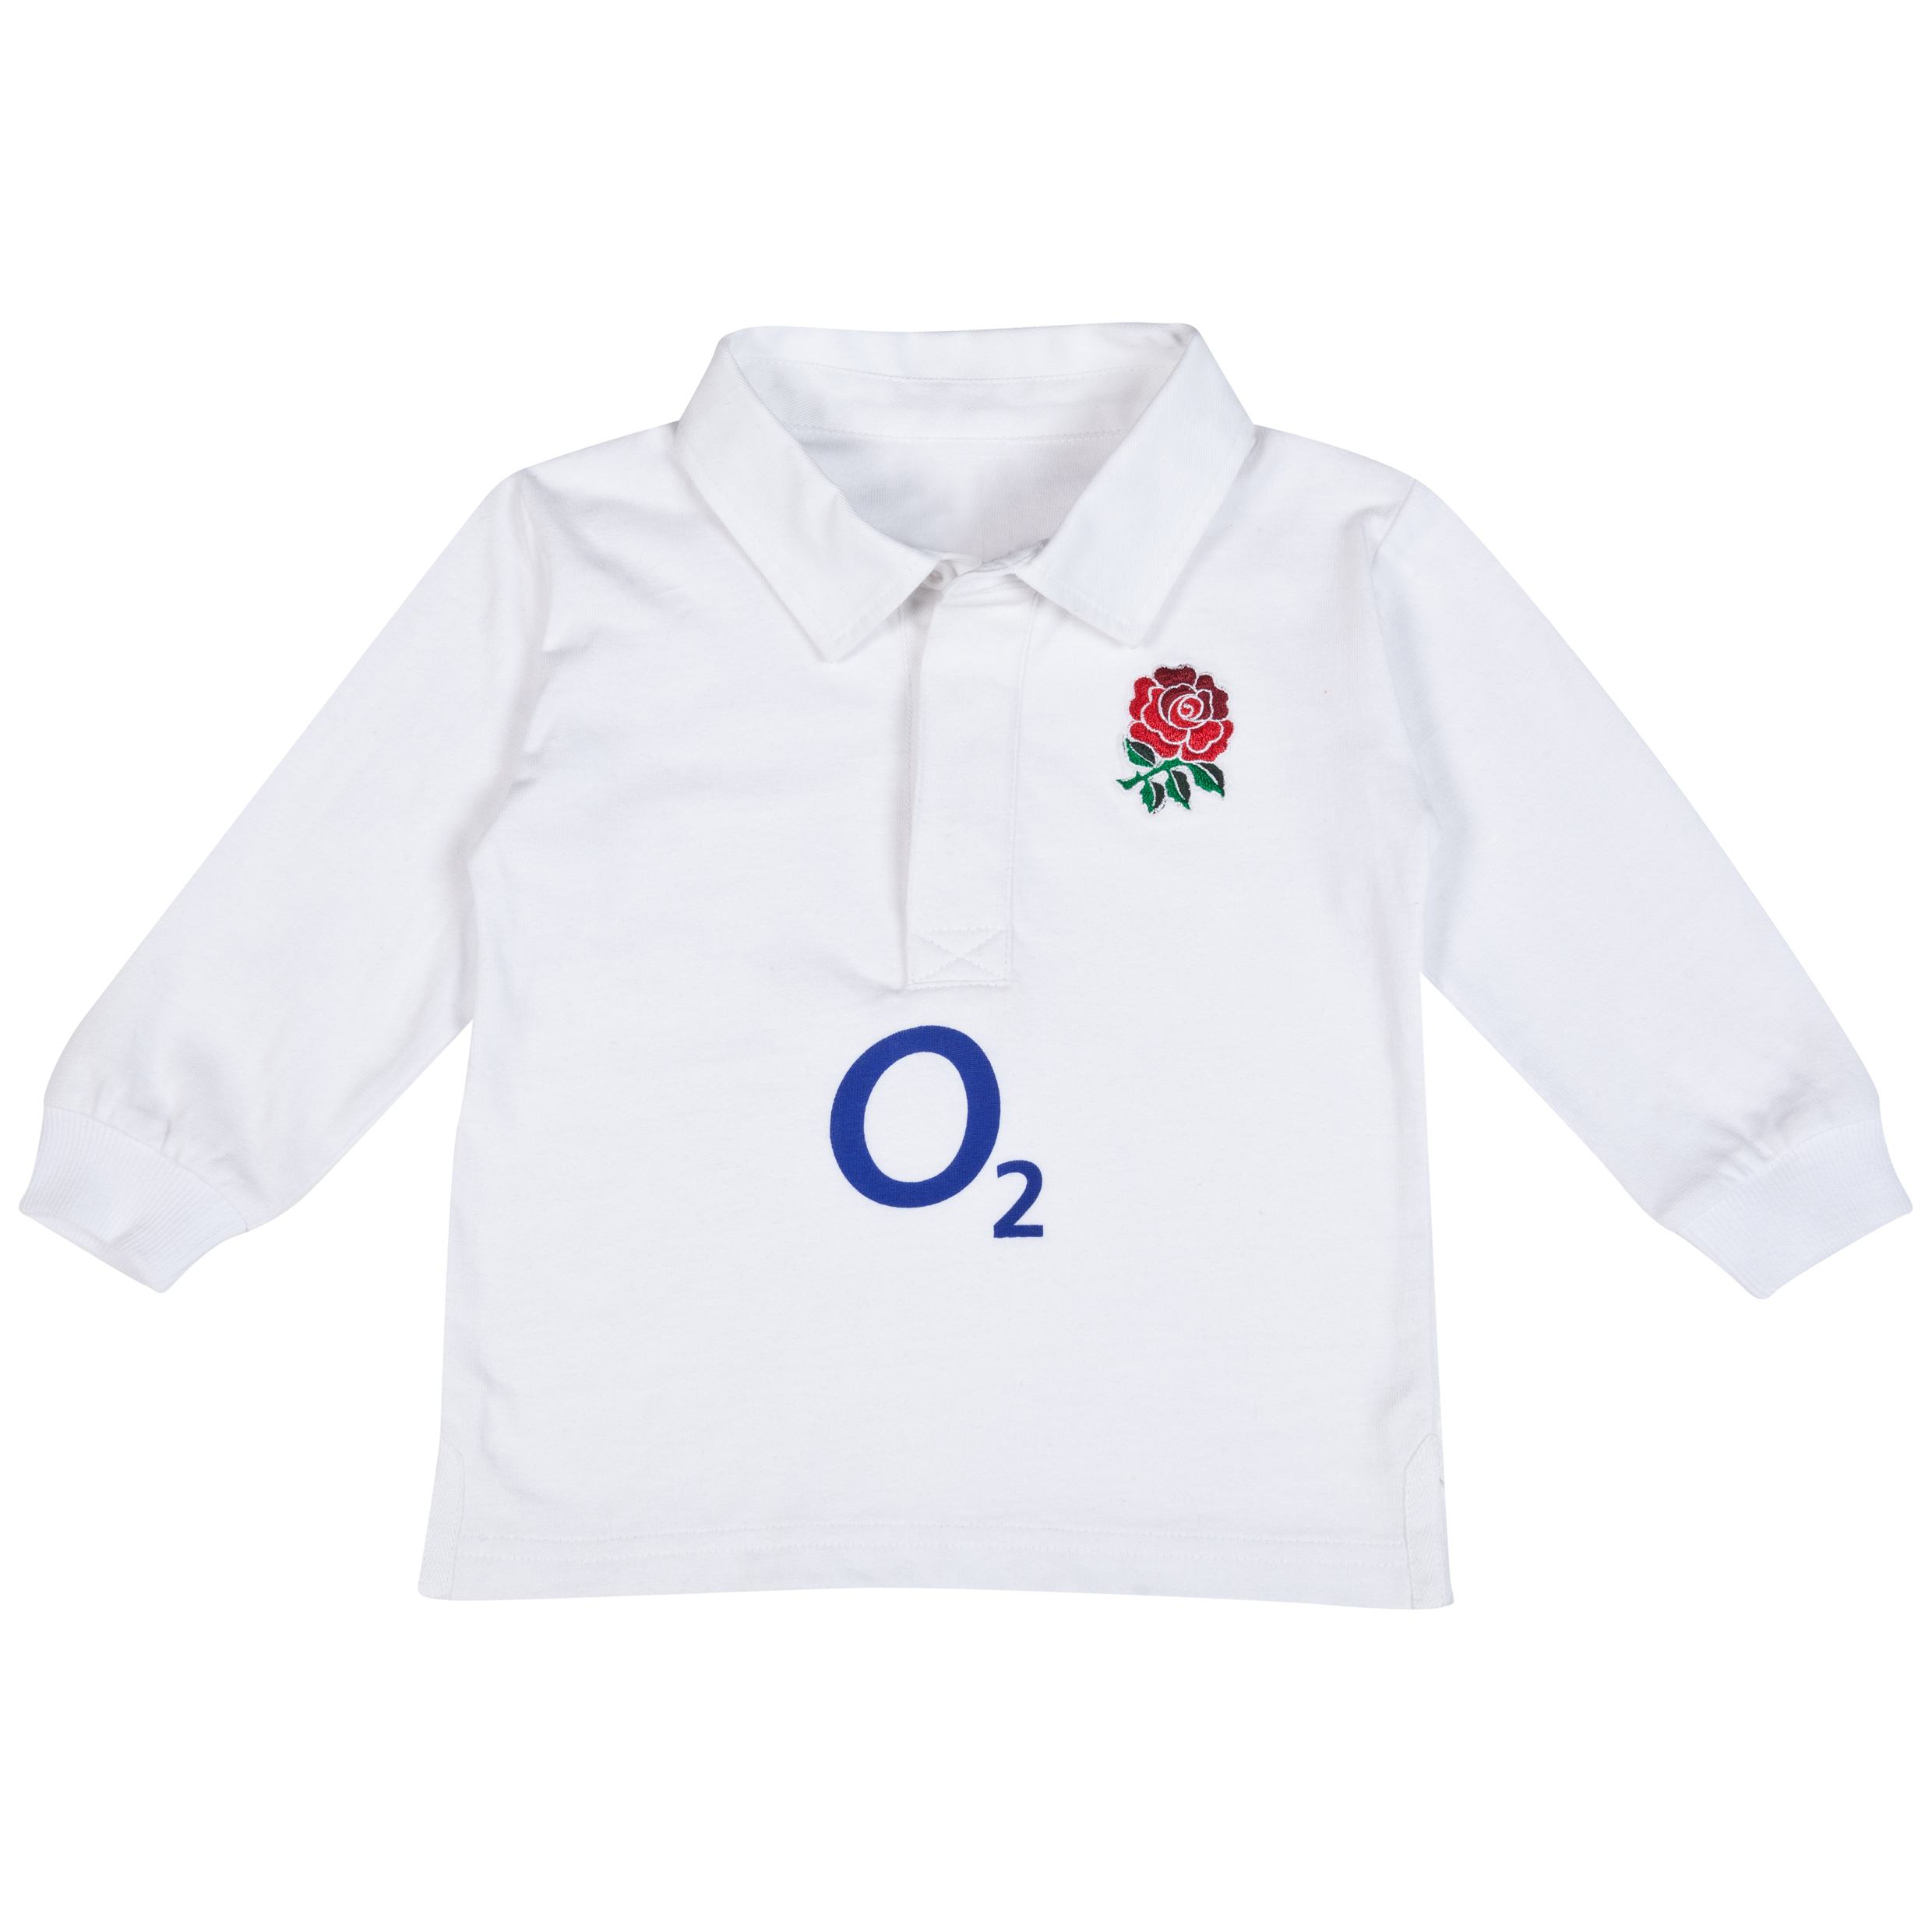 England Rugby Classic Long Sleeved Shirt - Infants White